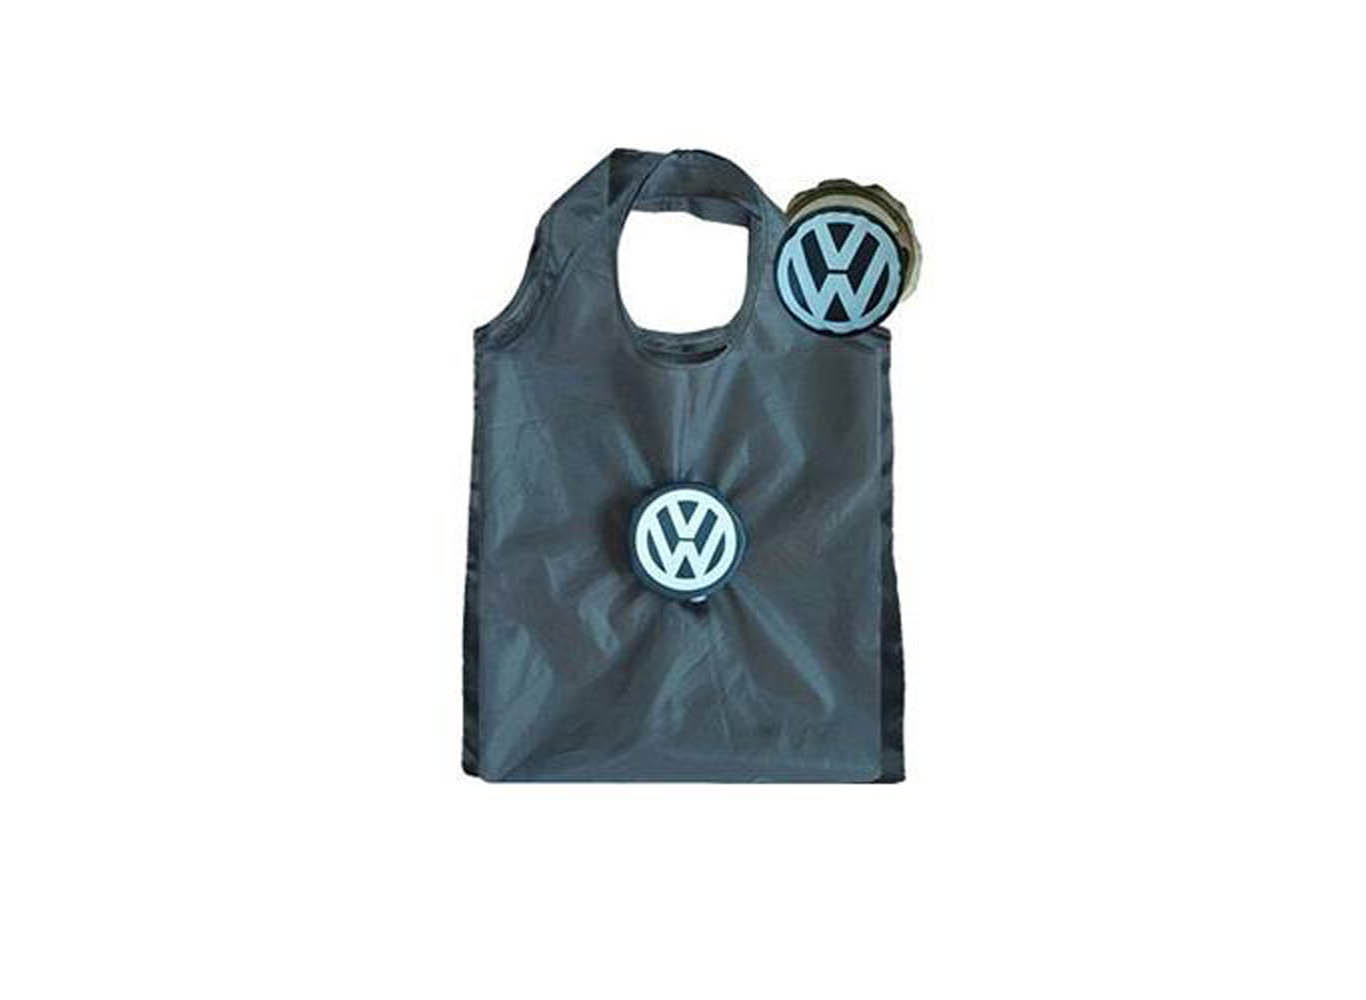 Reusable Foldable Bag with Custom Shaped Pouch